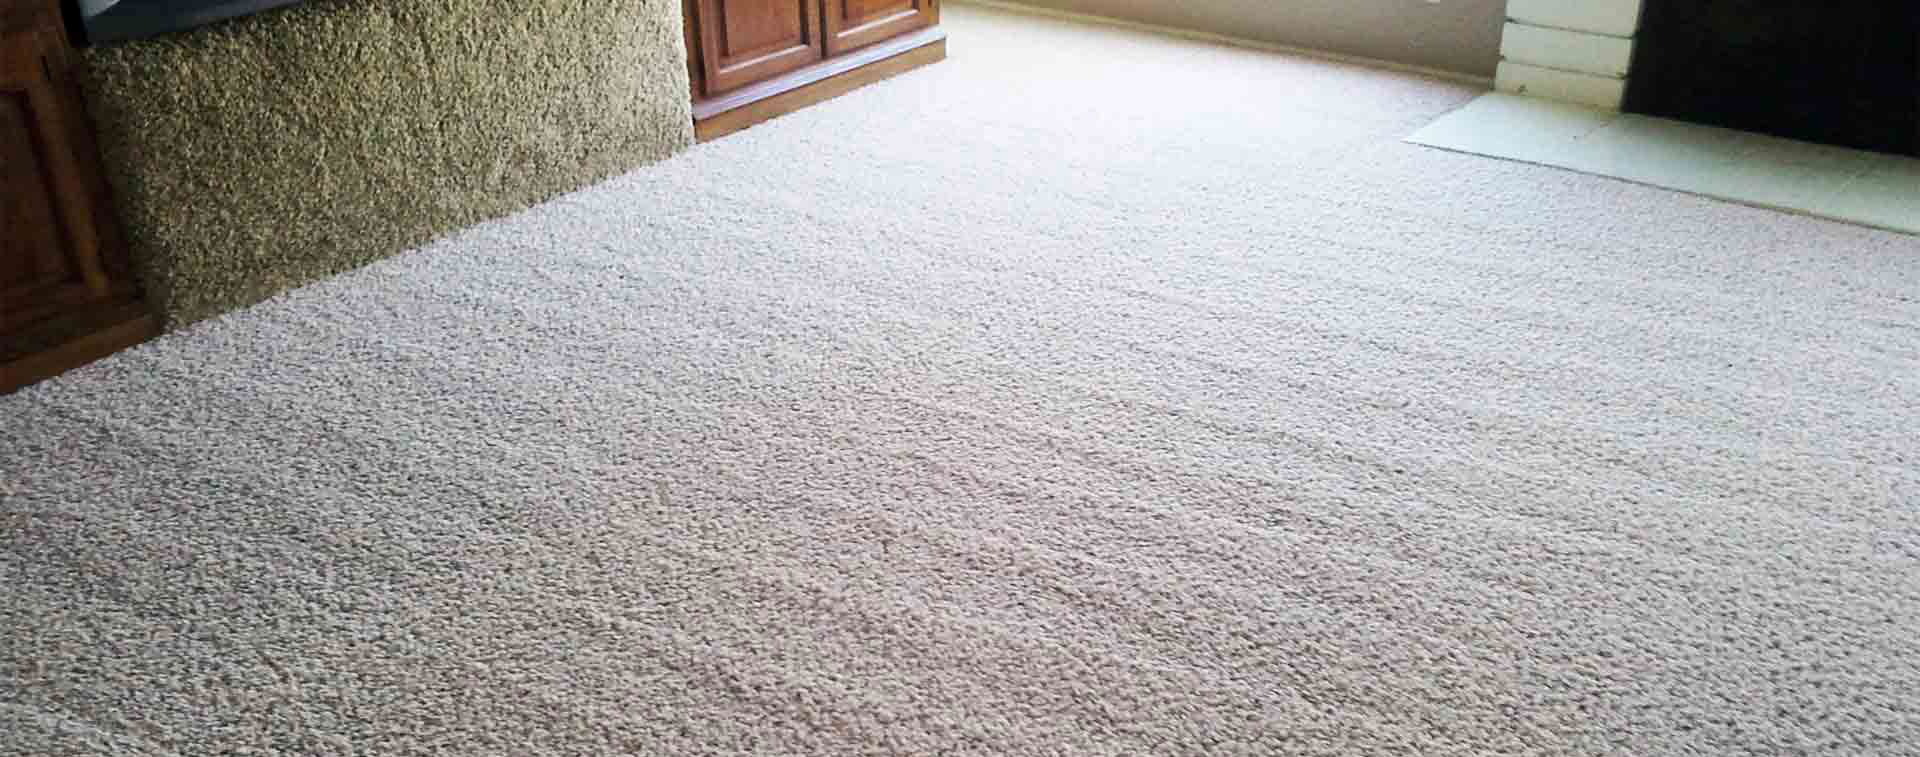 Carpet Cleaning Bella Vista